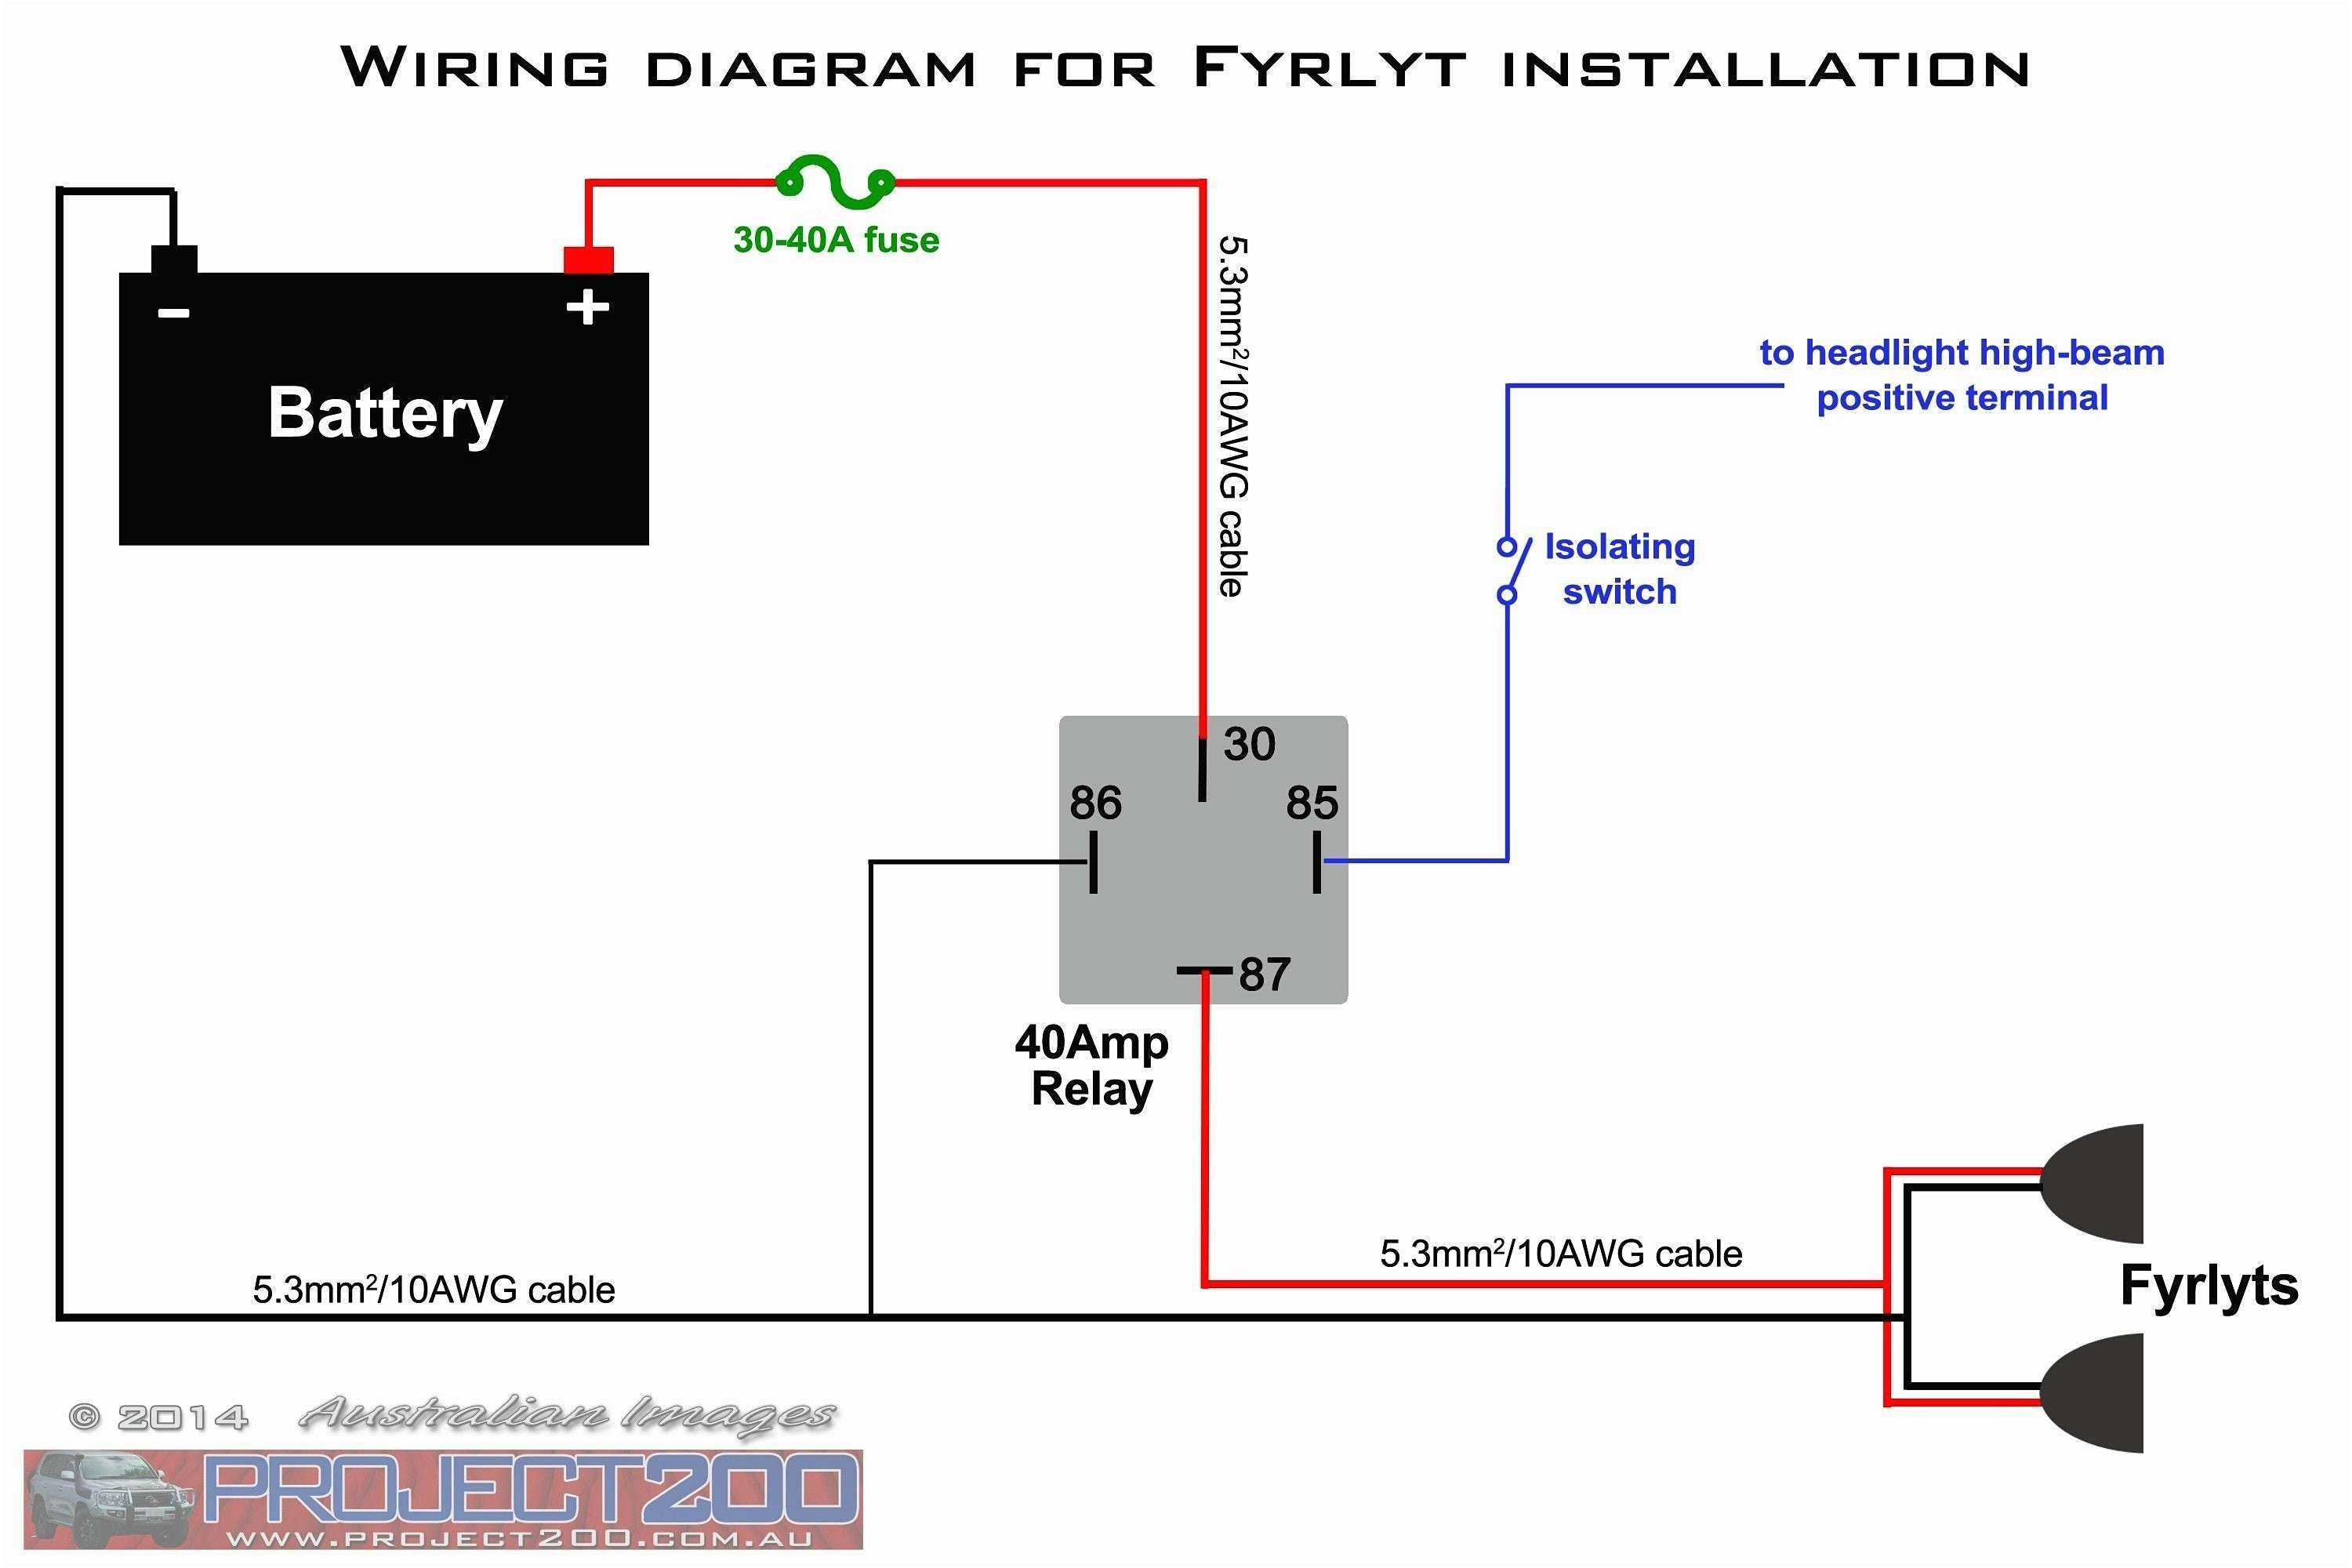 Wiring Diagram Electrical Wiring Diagram Electrical Electrical Wiring Diagram Electrical Circuit Diagram Diagram